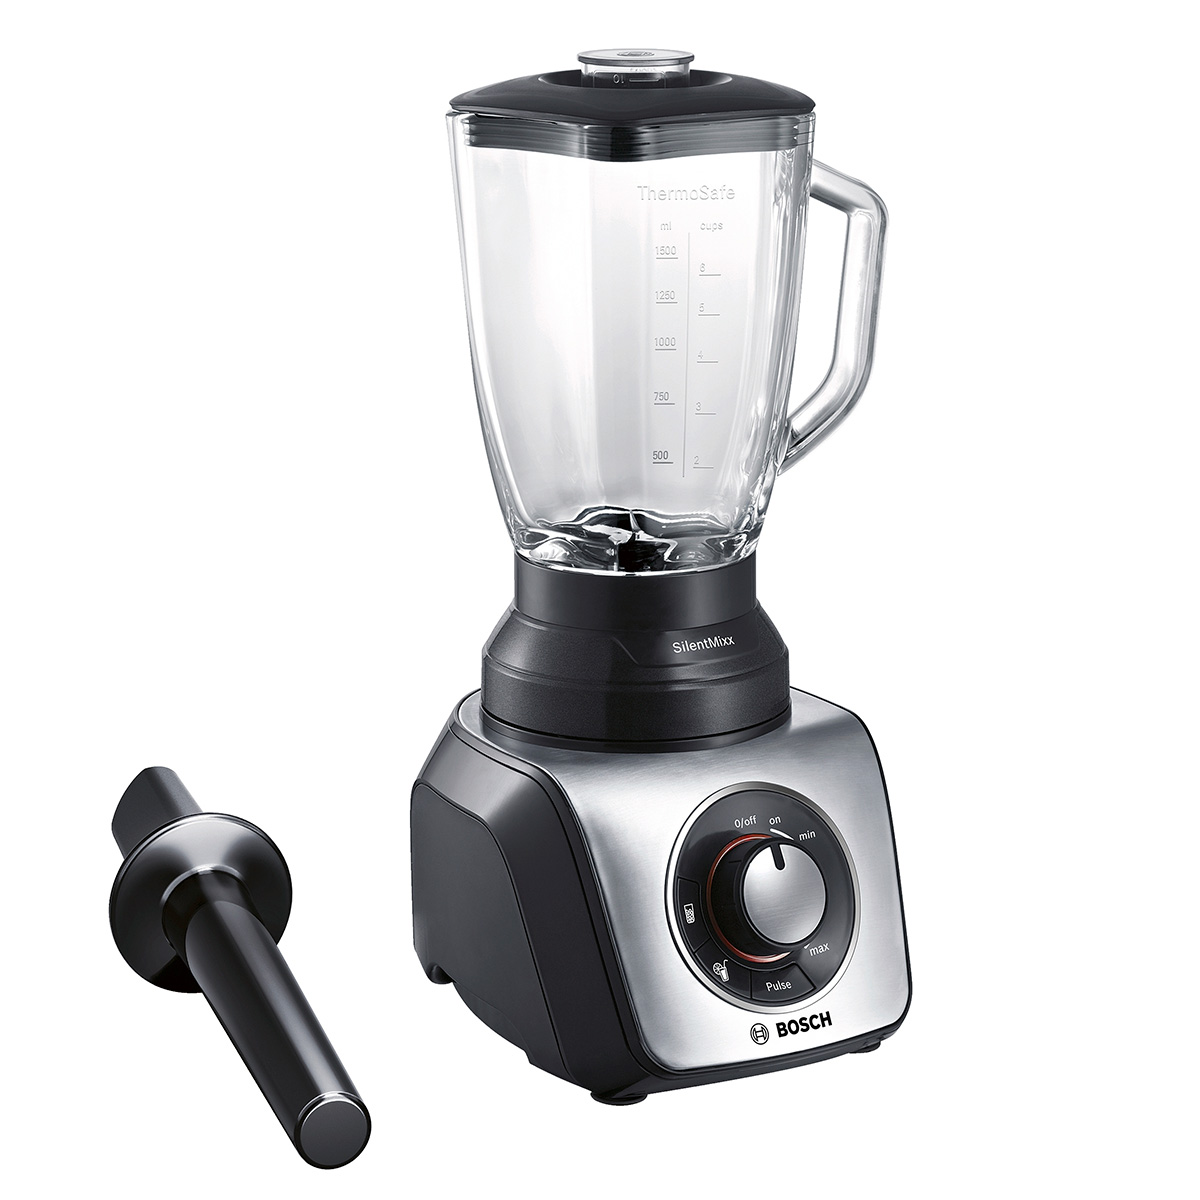 Image of   Bosch blender - SilentMixx